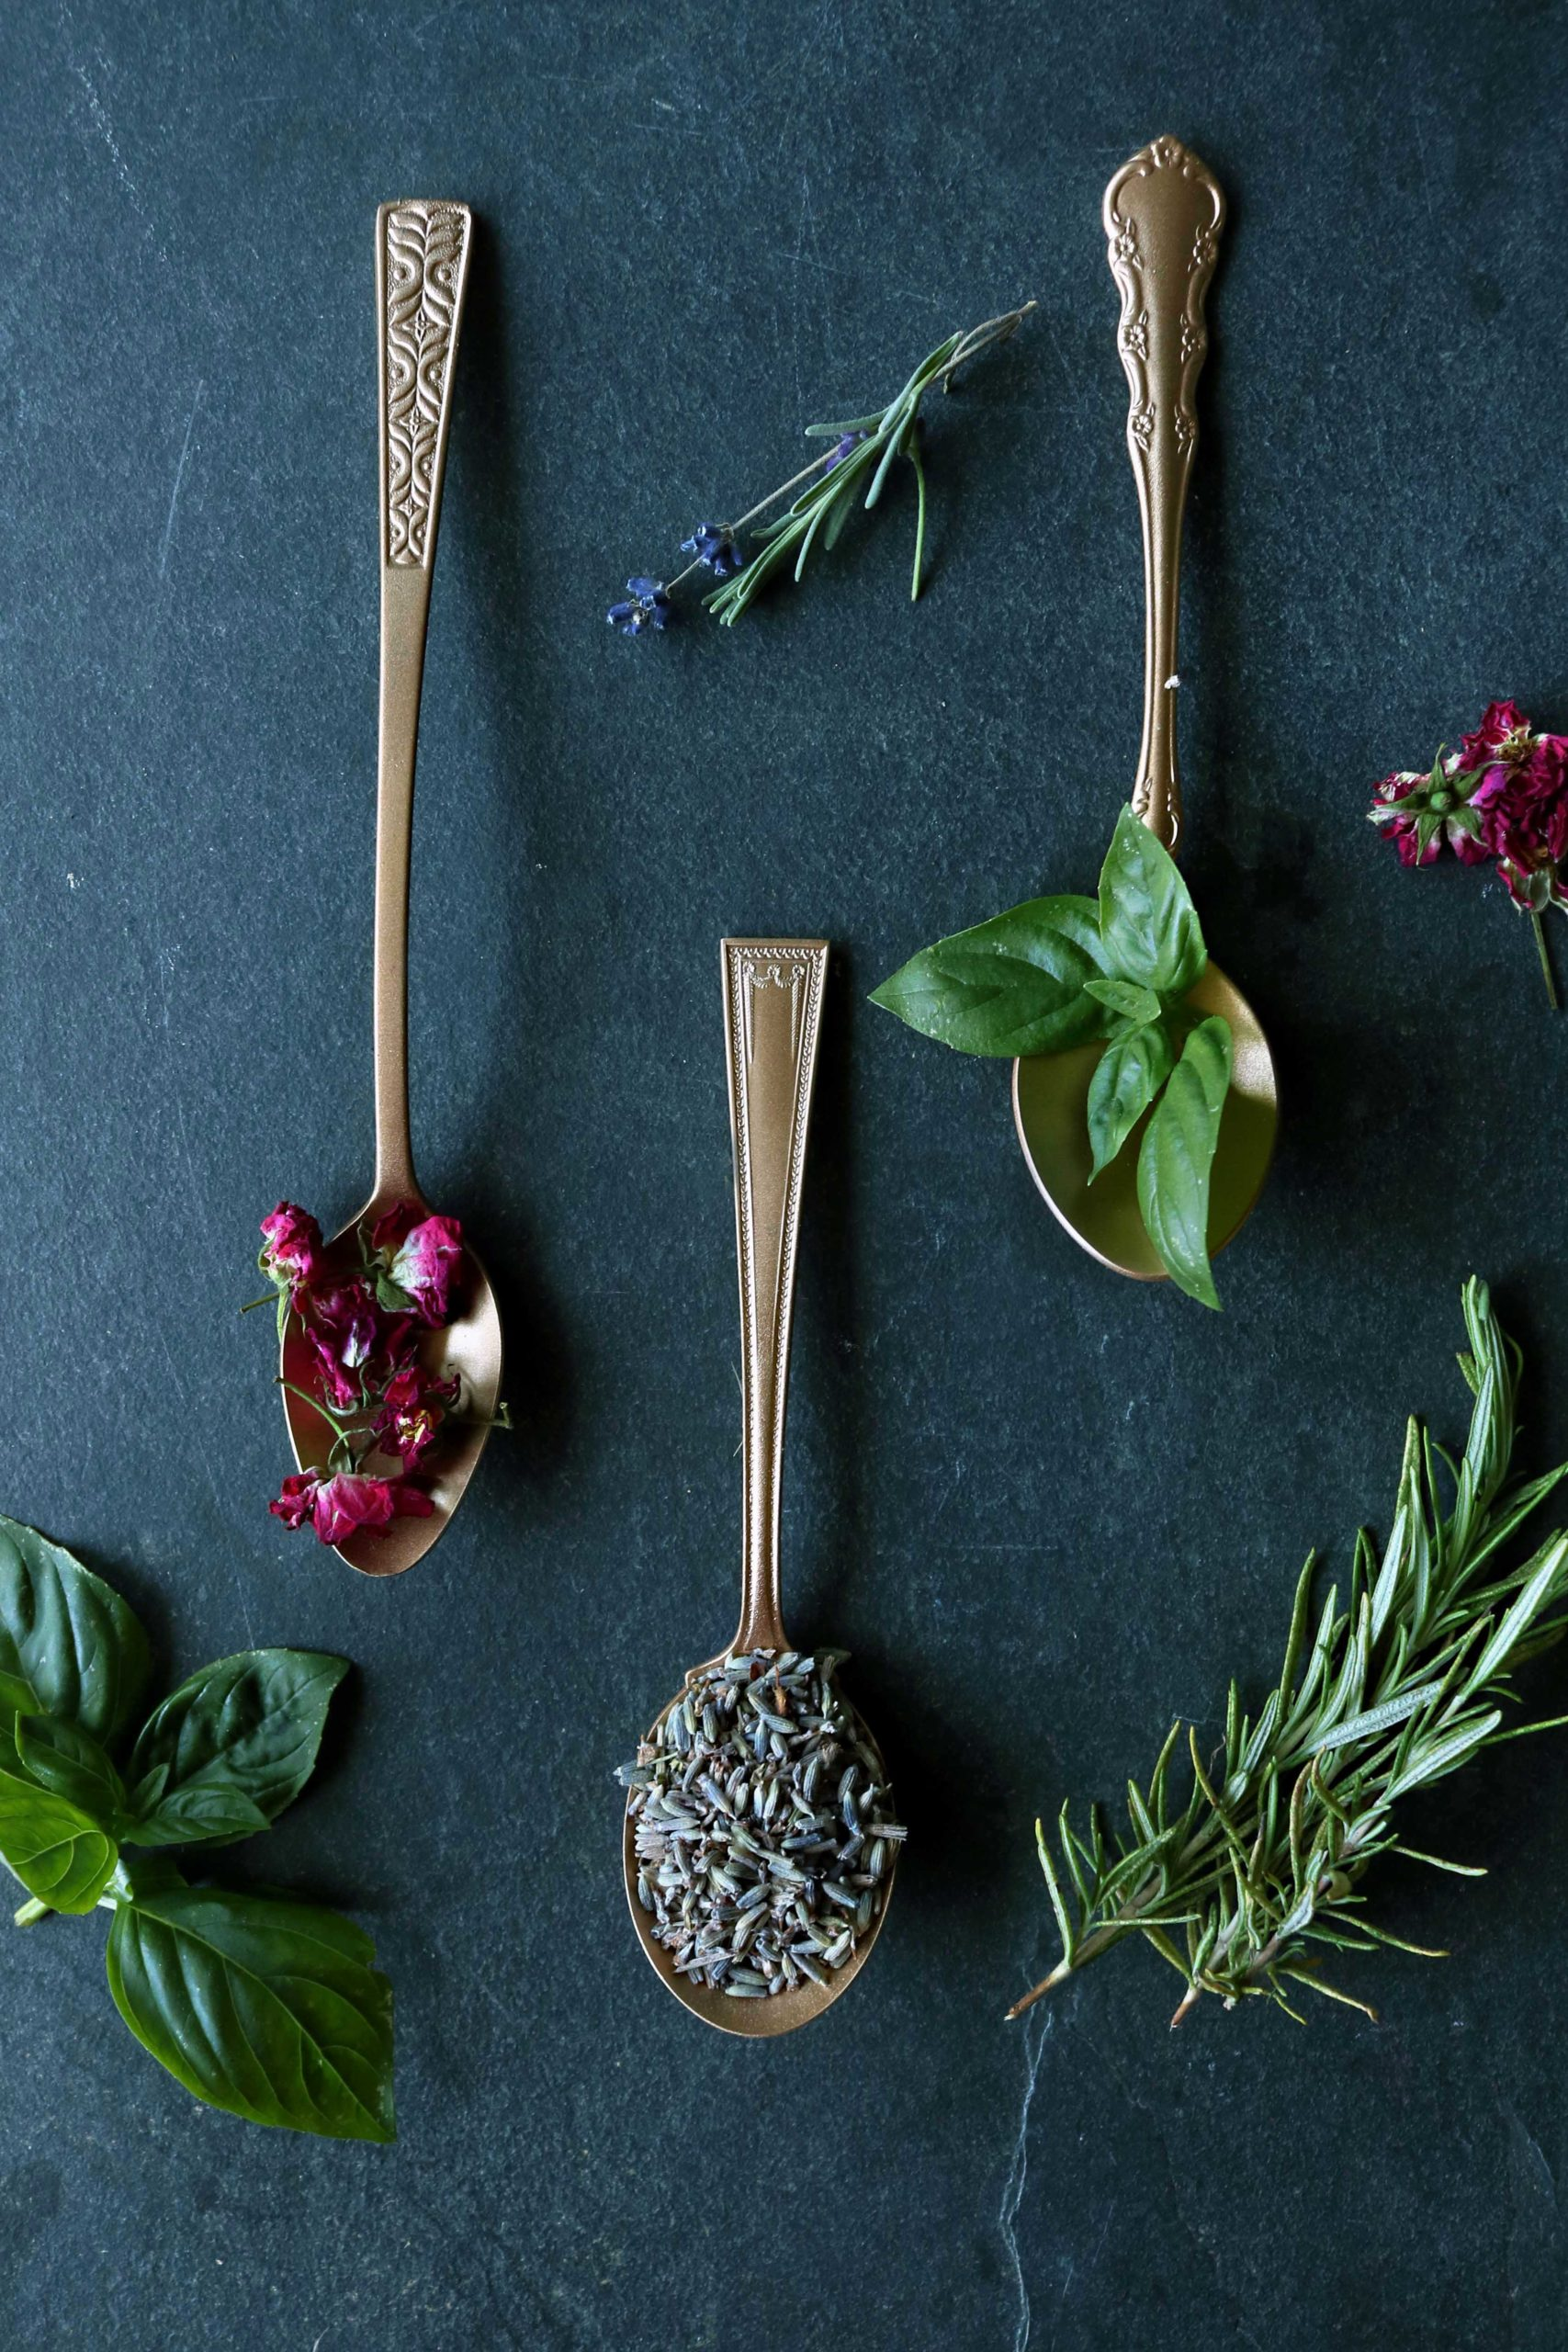 9 Love spell herbs and how to use them.